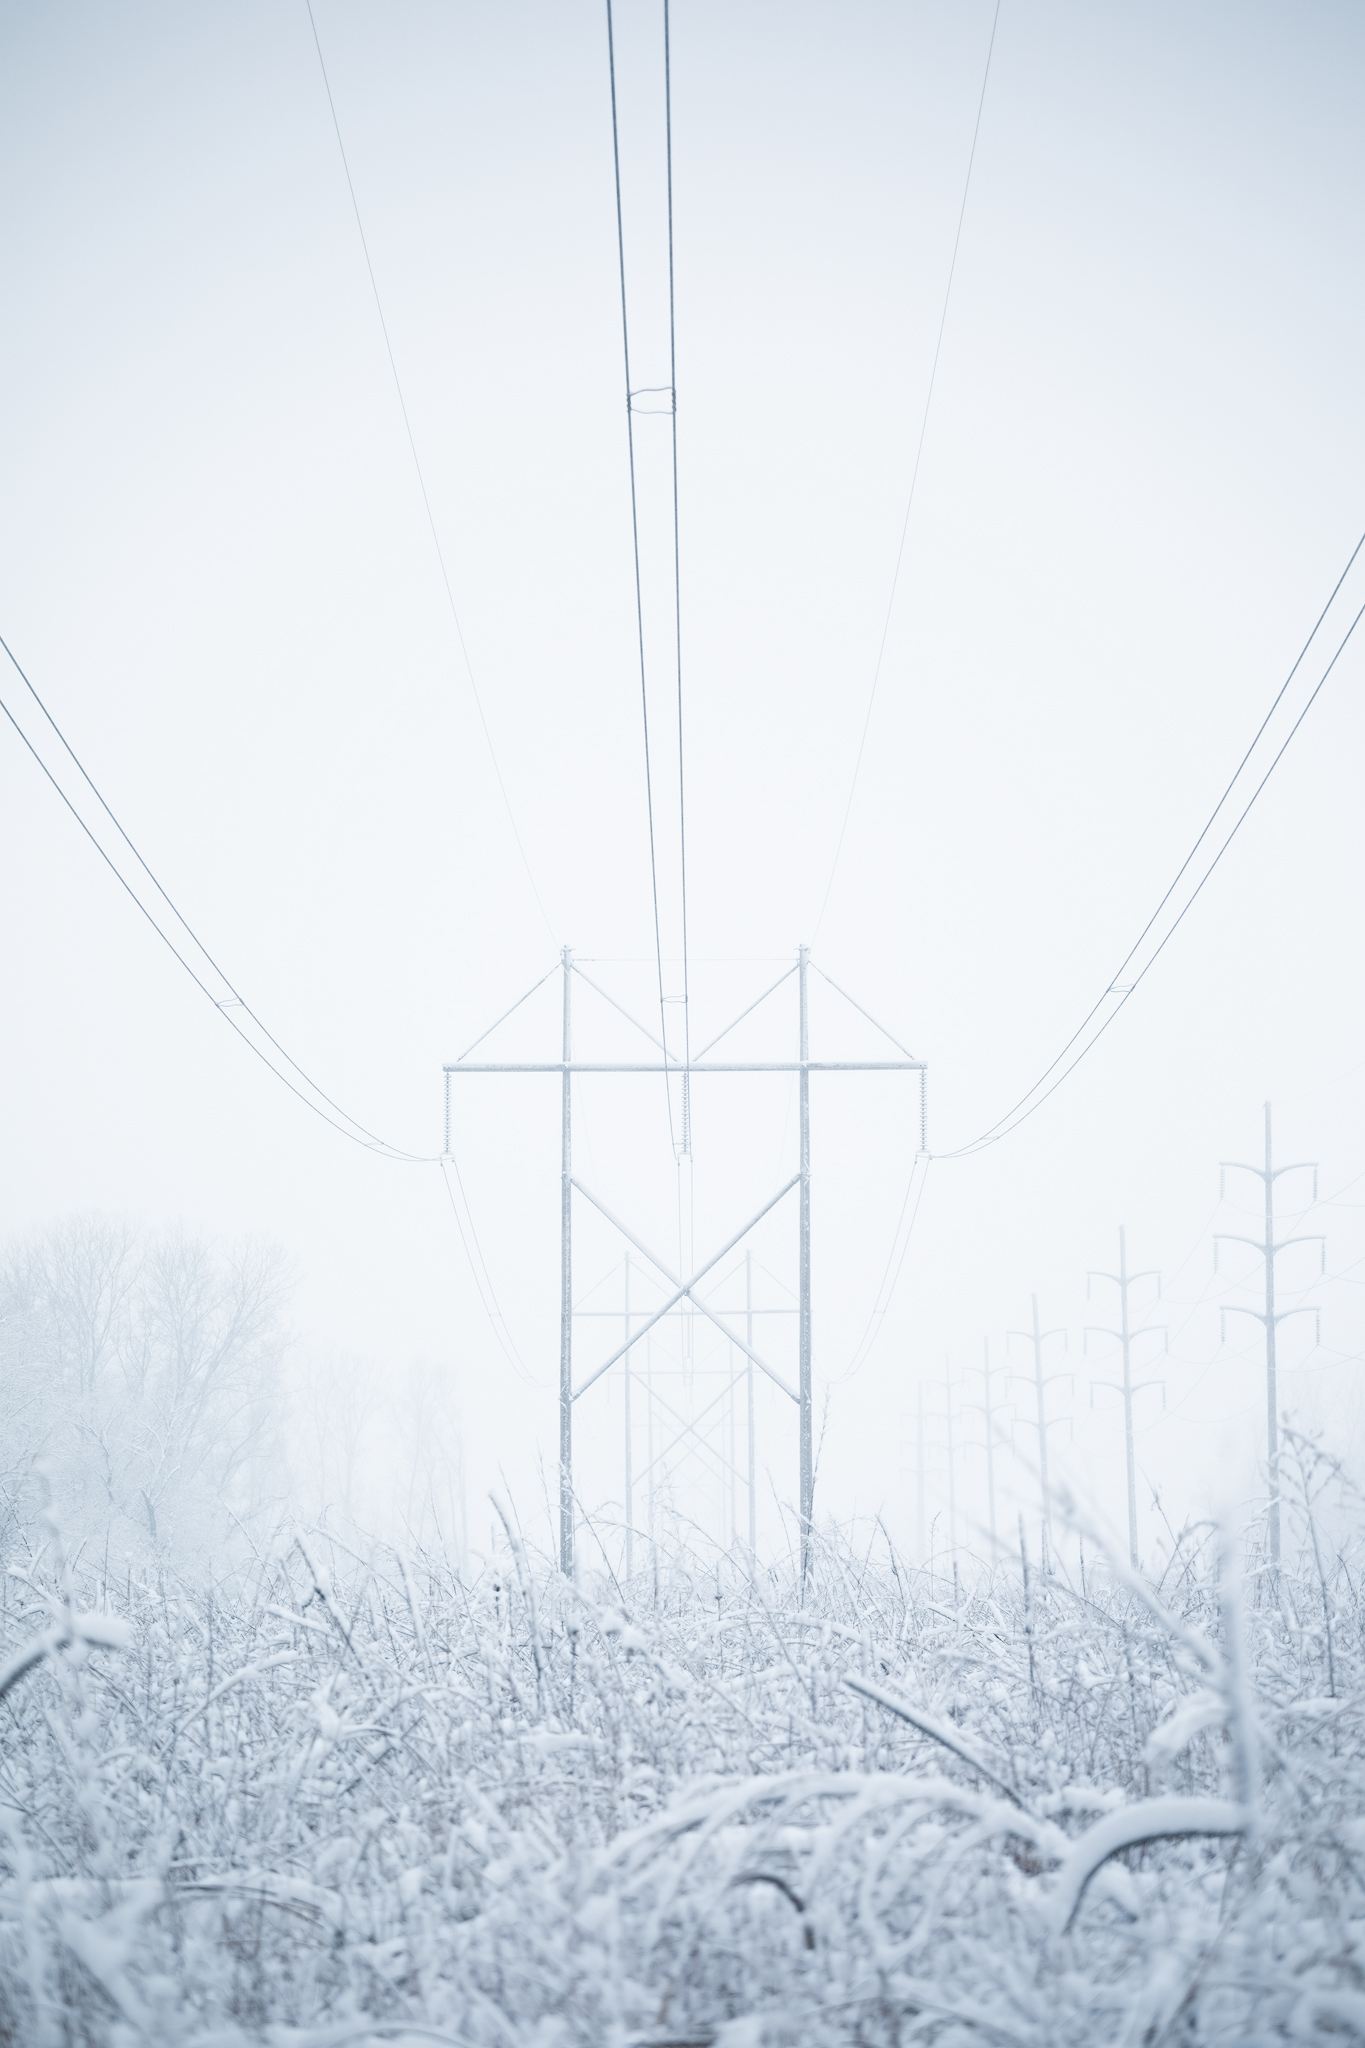 Power lines in Lake Manawa State Park - Handheld - 122mm - ISO 250 - f/4 - 1/400 sec